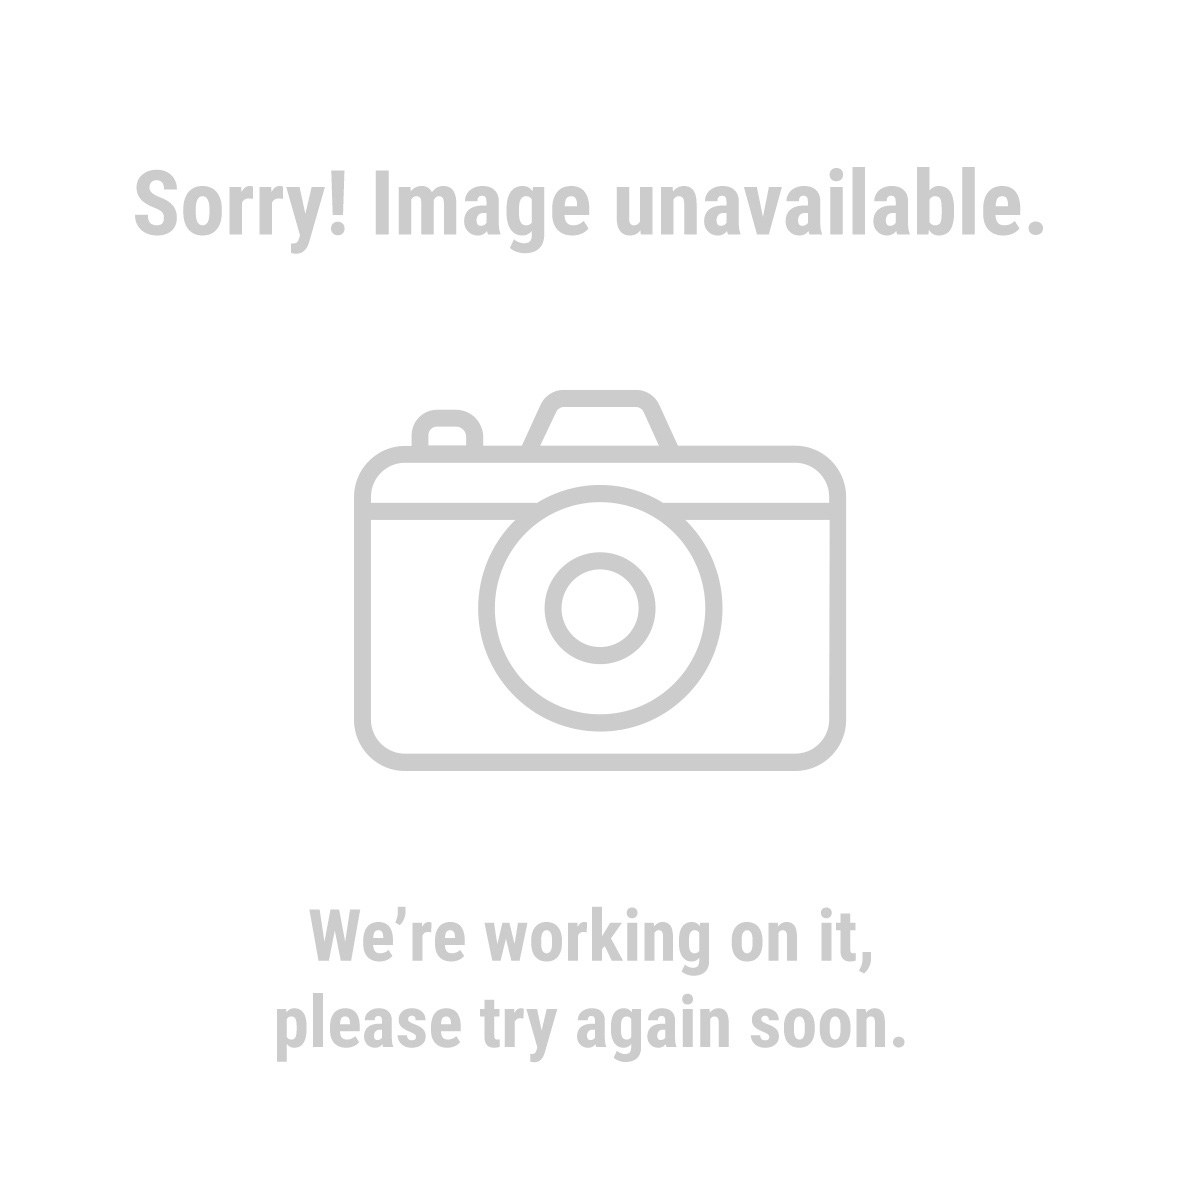 Storm Cat 69381 Portable Generator, 63cc, 900 Watts Max/800 Watts Rated